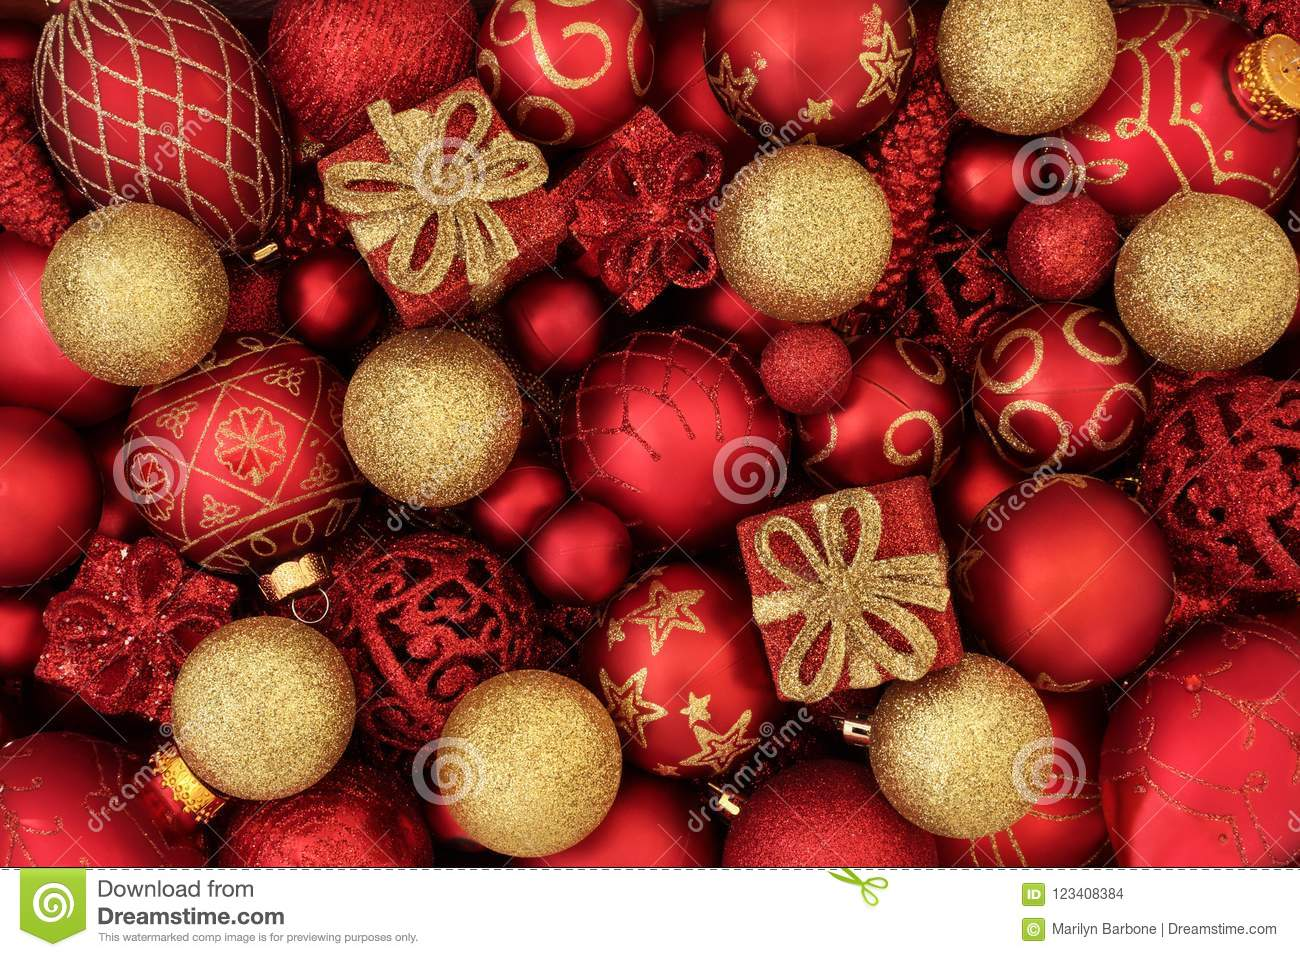 red gold christmas decorations bauble forming abstract festive background traditional greeting card holiday season 123408384